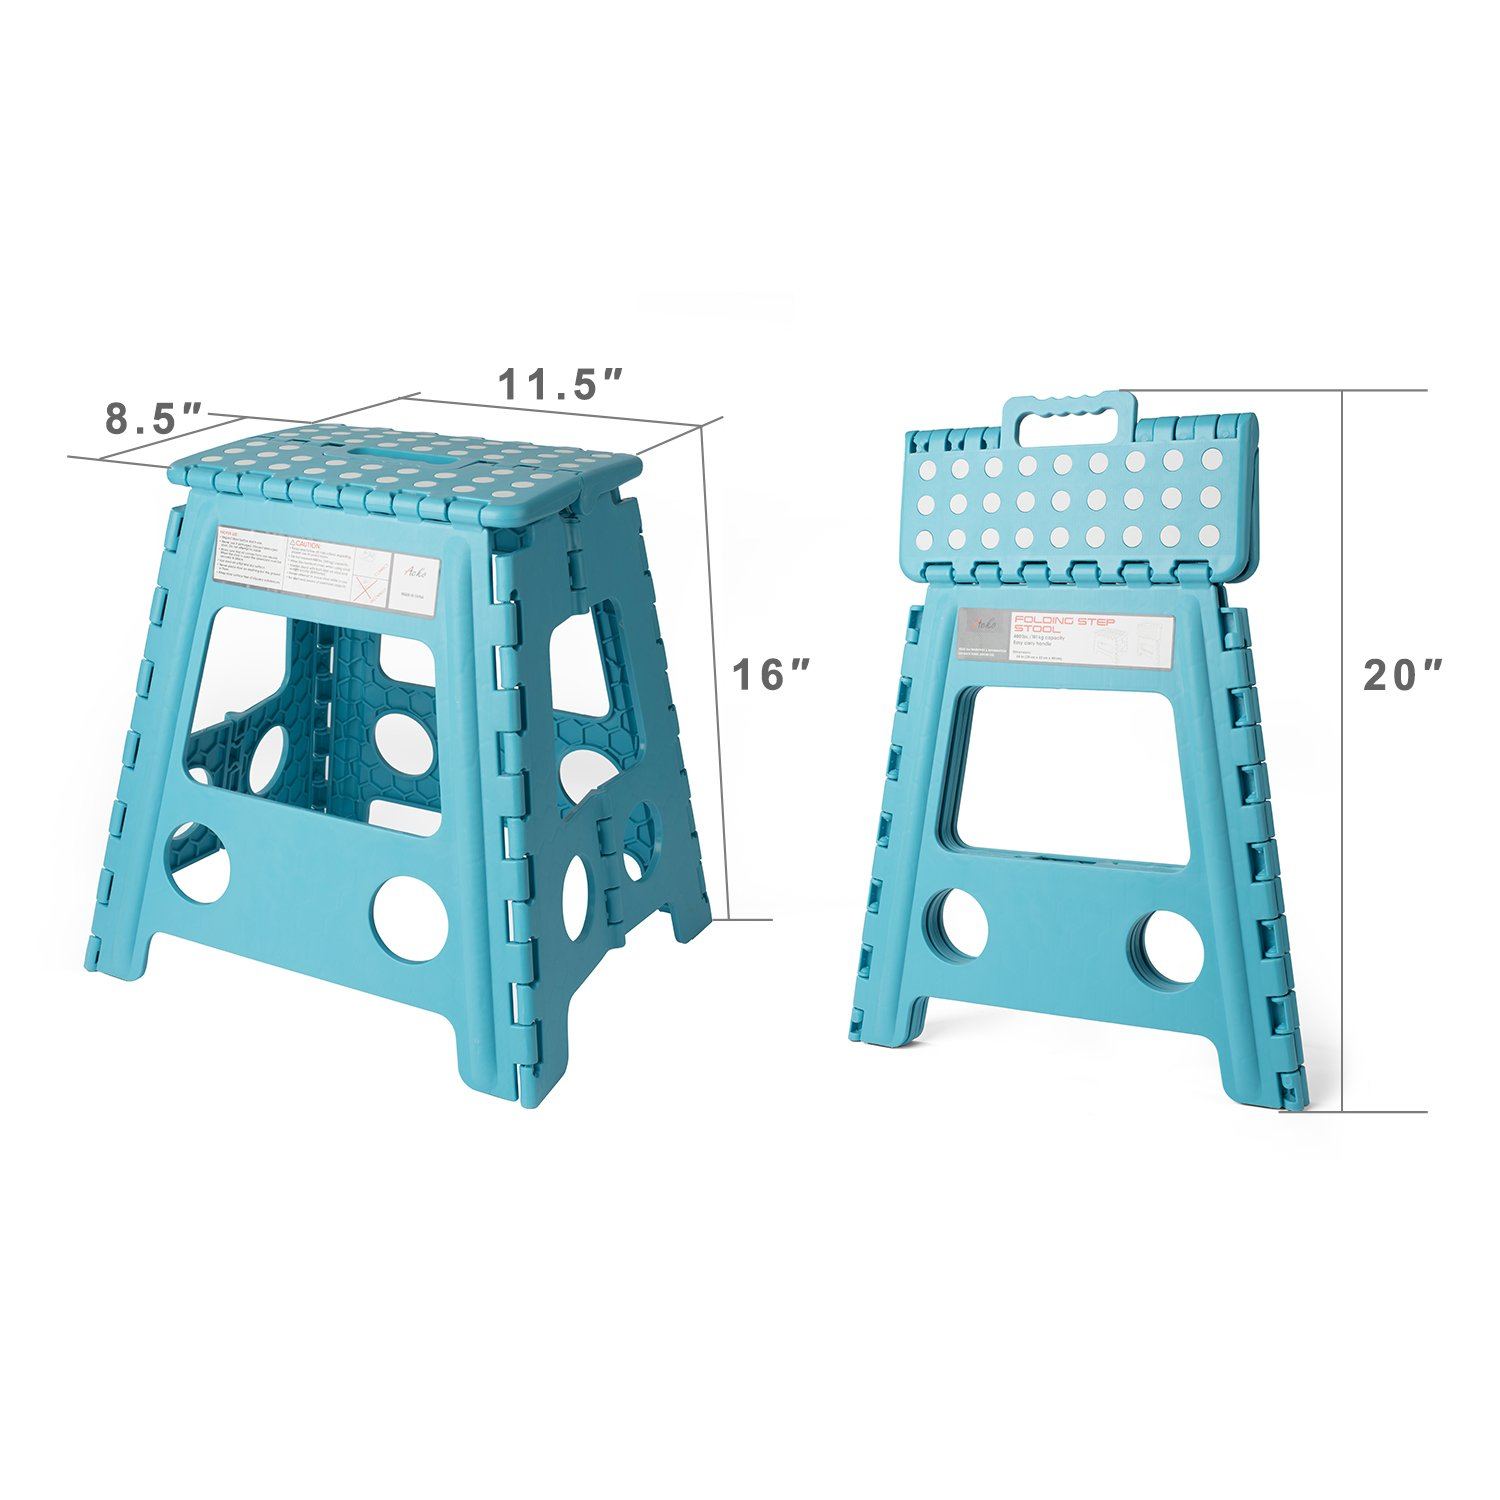 Amazon.com: Acko 16 Inches Super Strong Folding Step Stool for ...